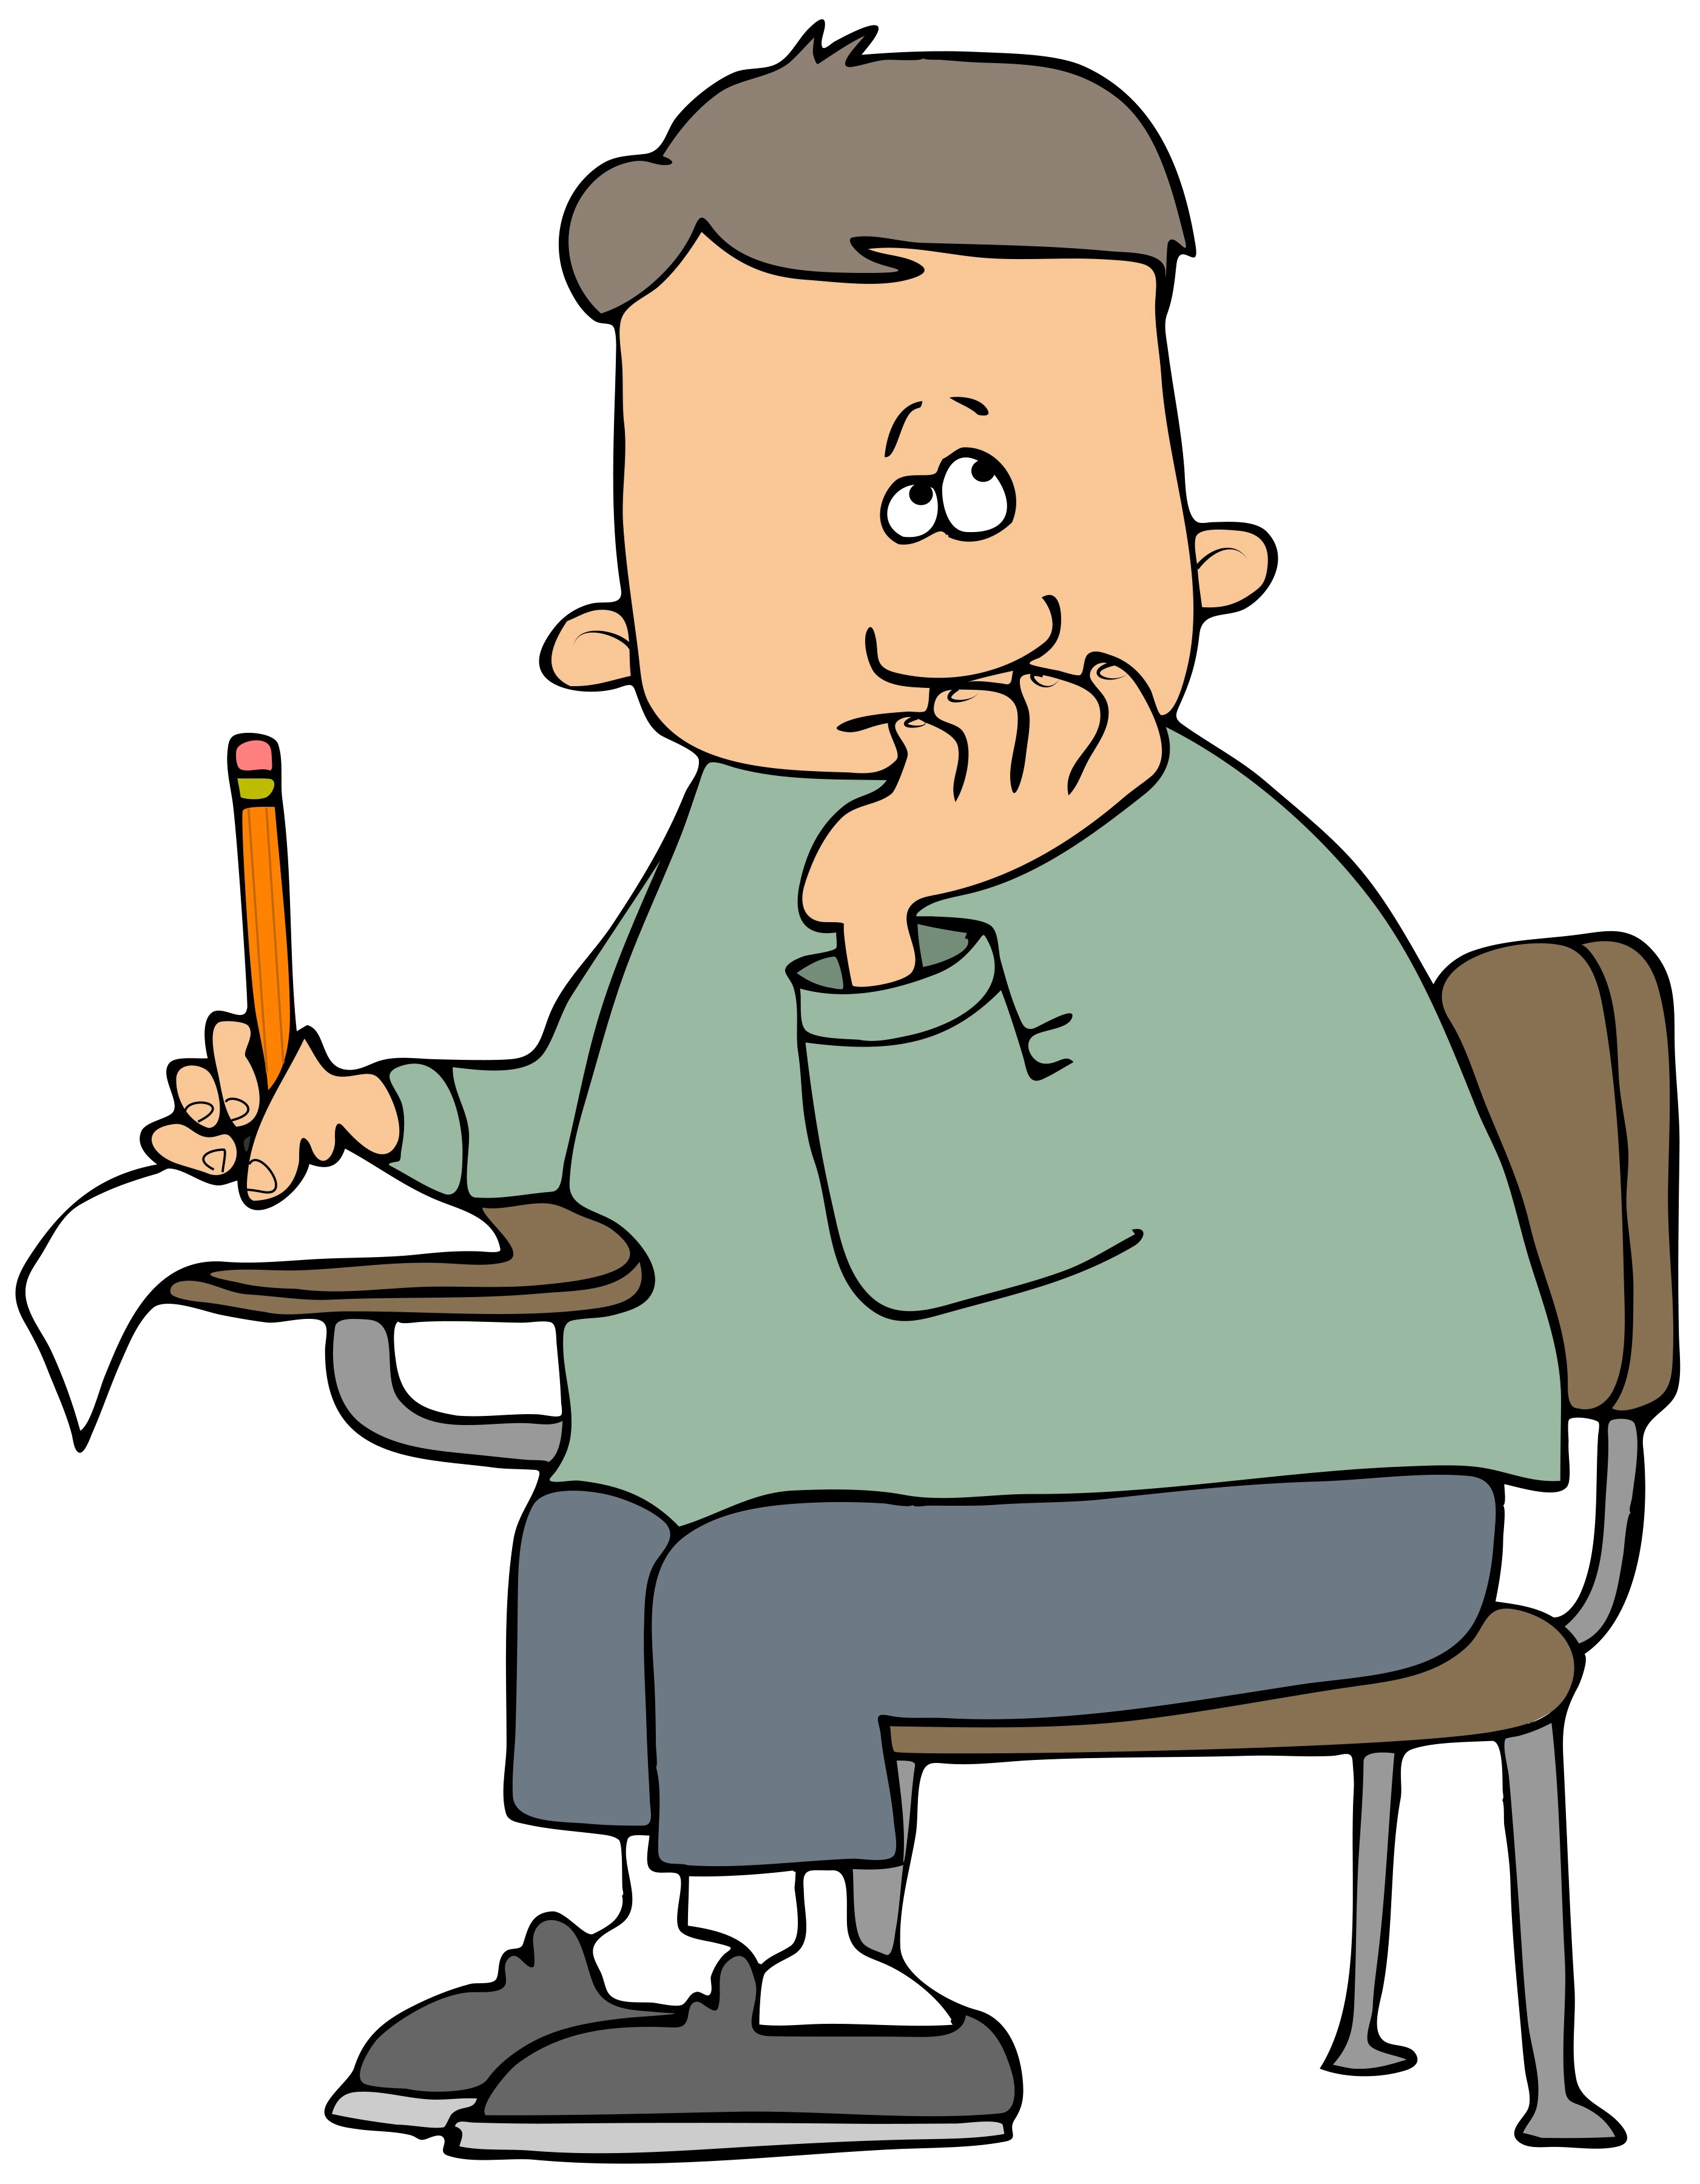 Student taking the sat test clipart.